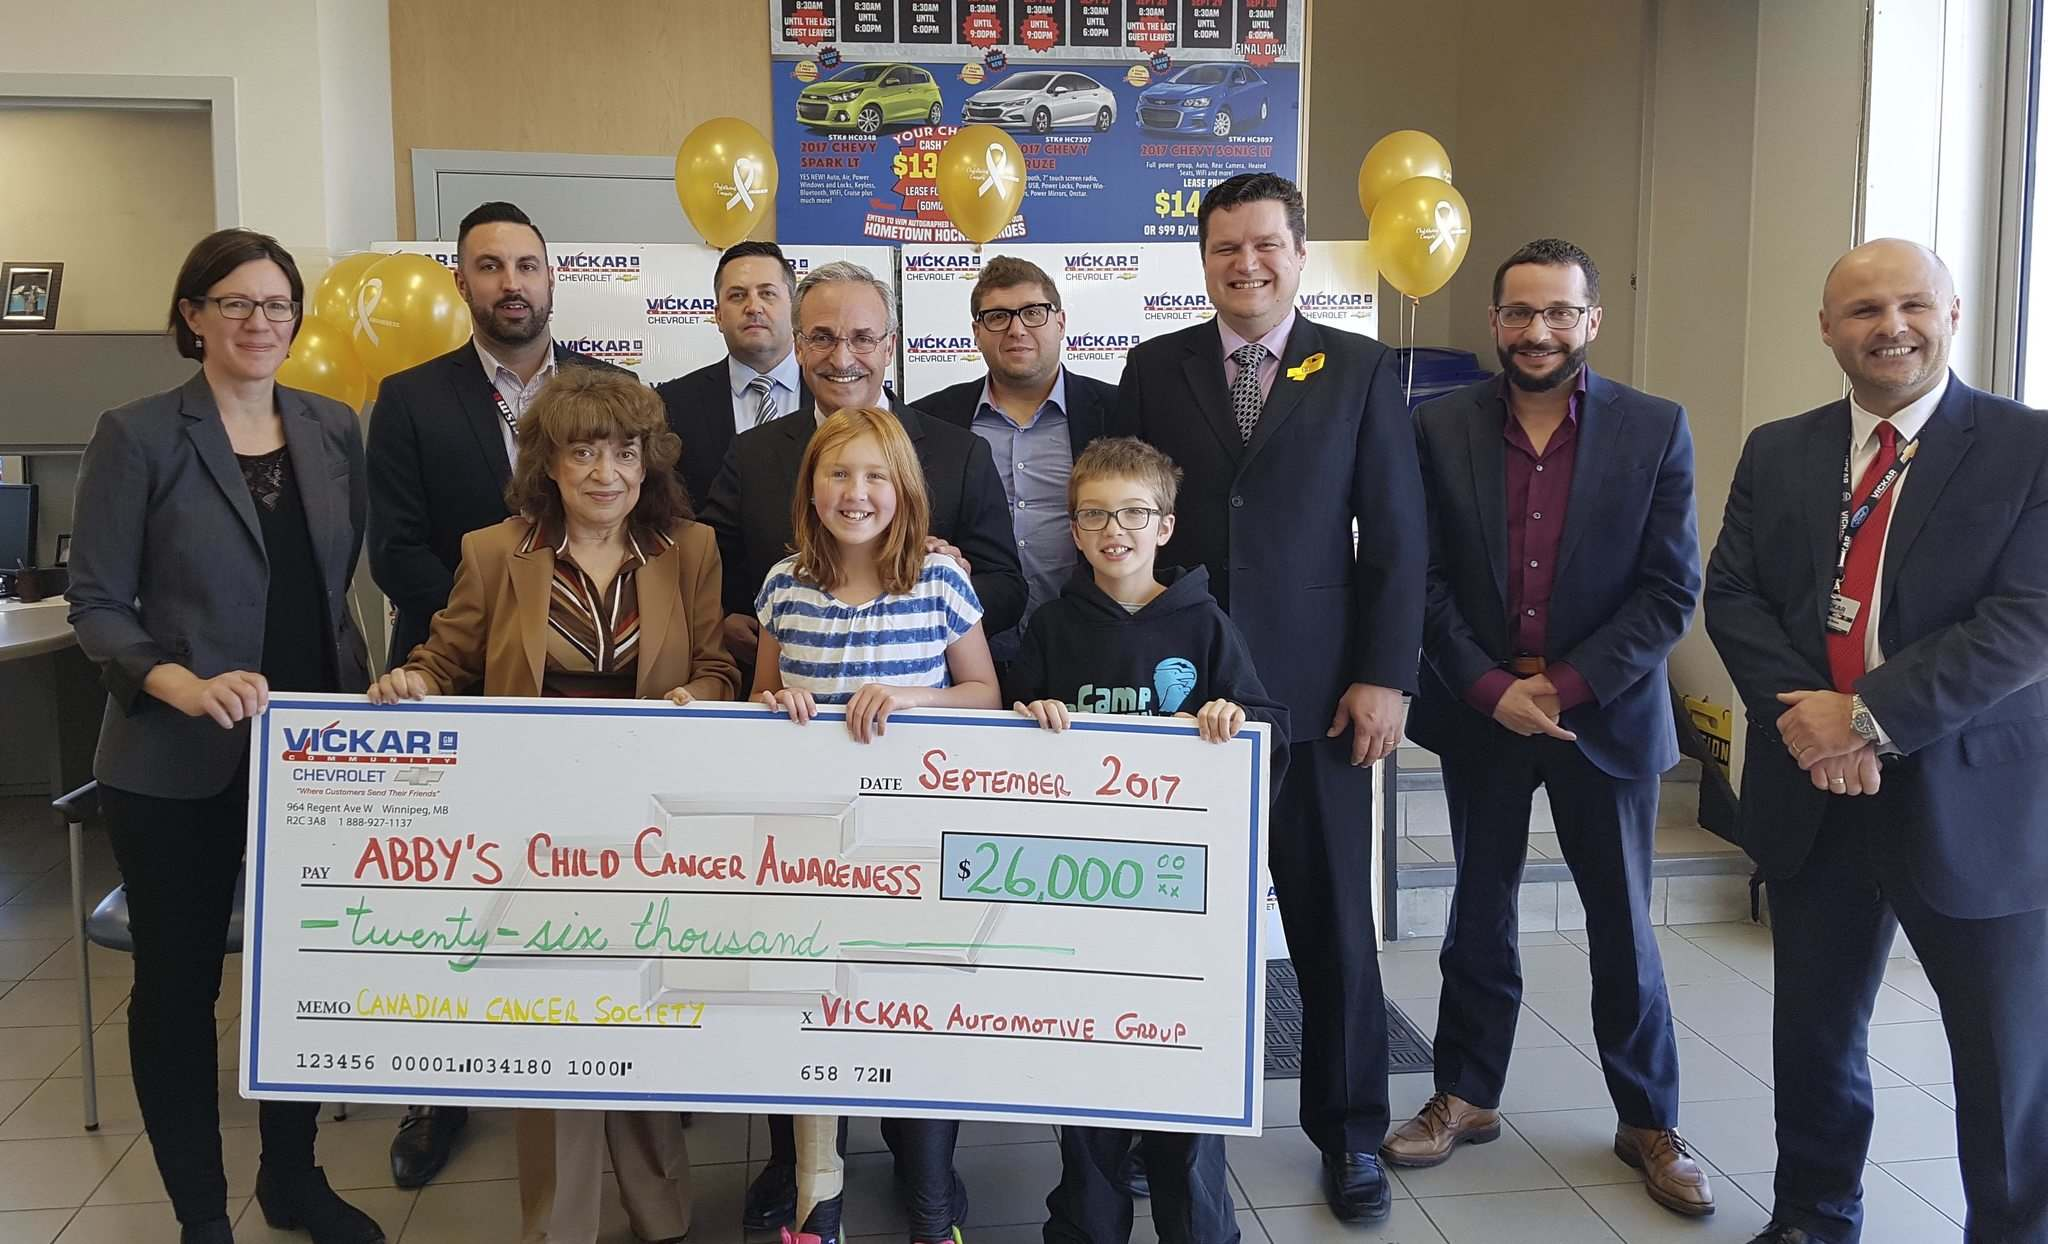 On Oct. 11 the Vickar Automotive Group presented a cheque for $26,000 to Abby Stewart and the Canadian Cancer Society.Pictured from left to right: Erin Crawford from the Canadian Cancer Society, Ryan Pasternik, Tova Vickar, Tim Penner, Larry Vickar, Abby Stewart, Stephen Vickar, Zachary Stewart, James Teitsma, Sam Vickar and Domenic Sacco.